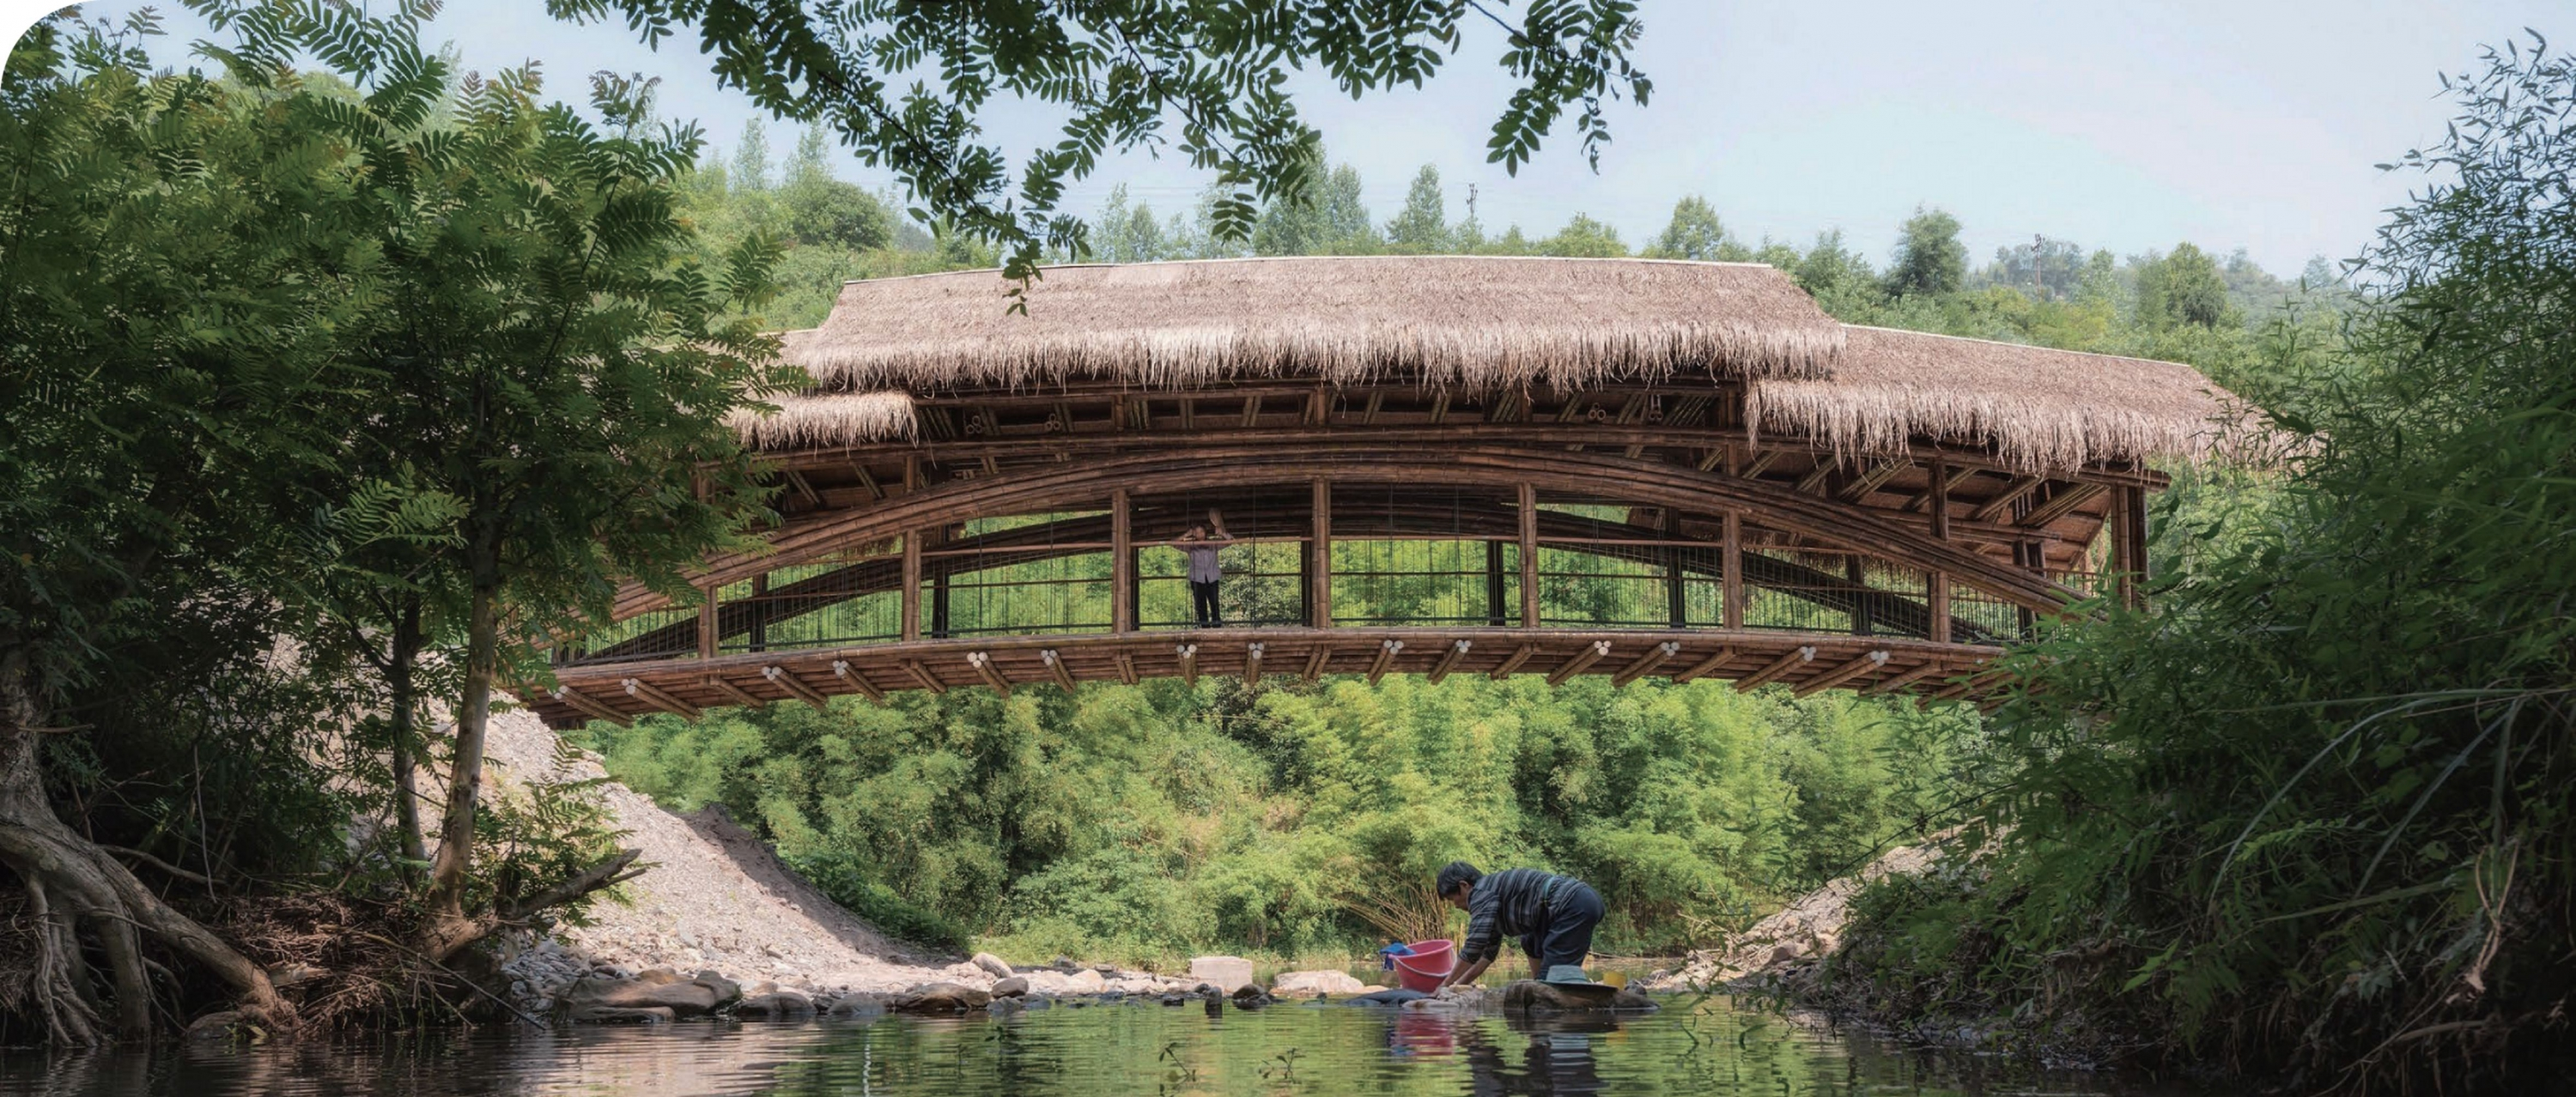 Modern Bamboo Structure Research Group, CUHK